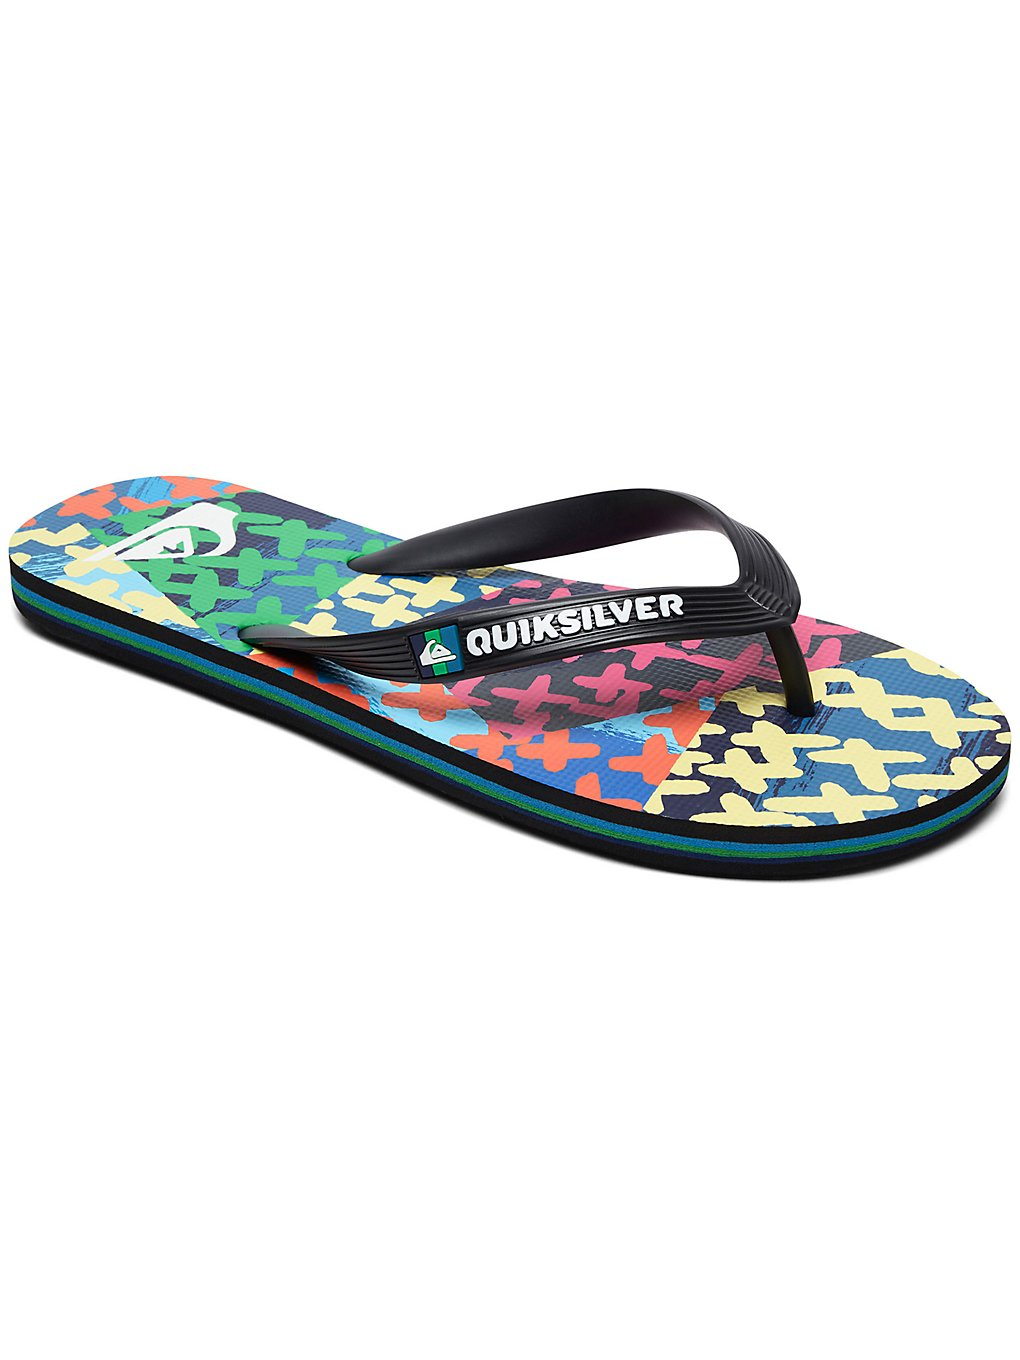 Image of Quiksilver Molokai Variable Volley Sandals blu